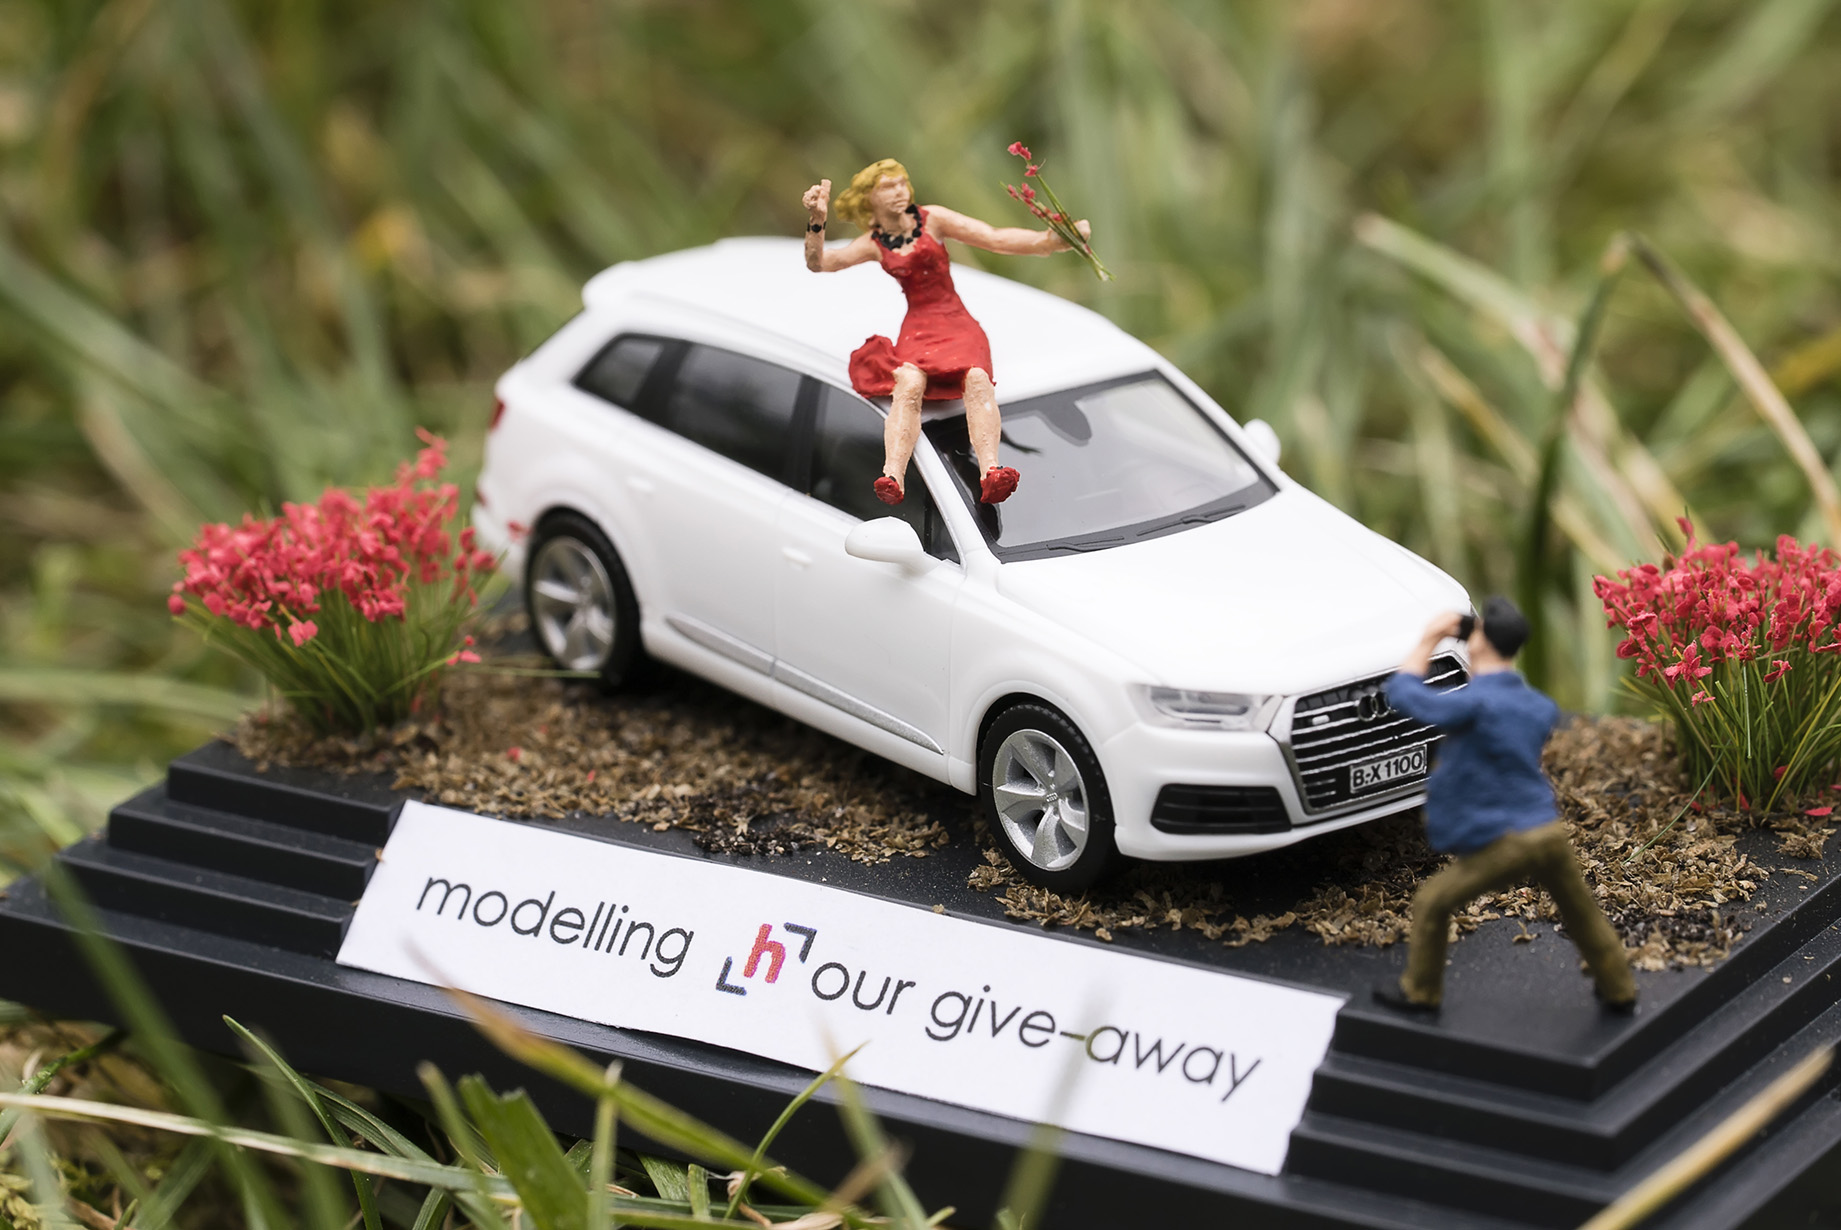 modellinghour.com - mini-model - 02-01